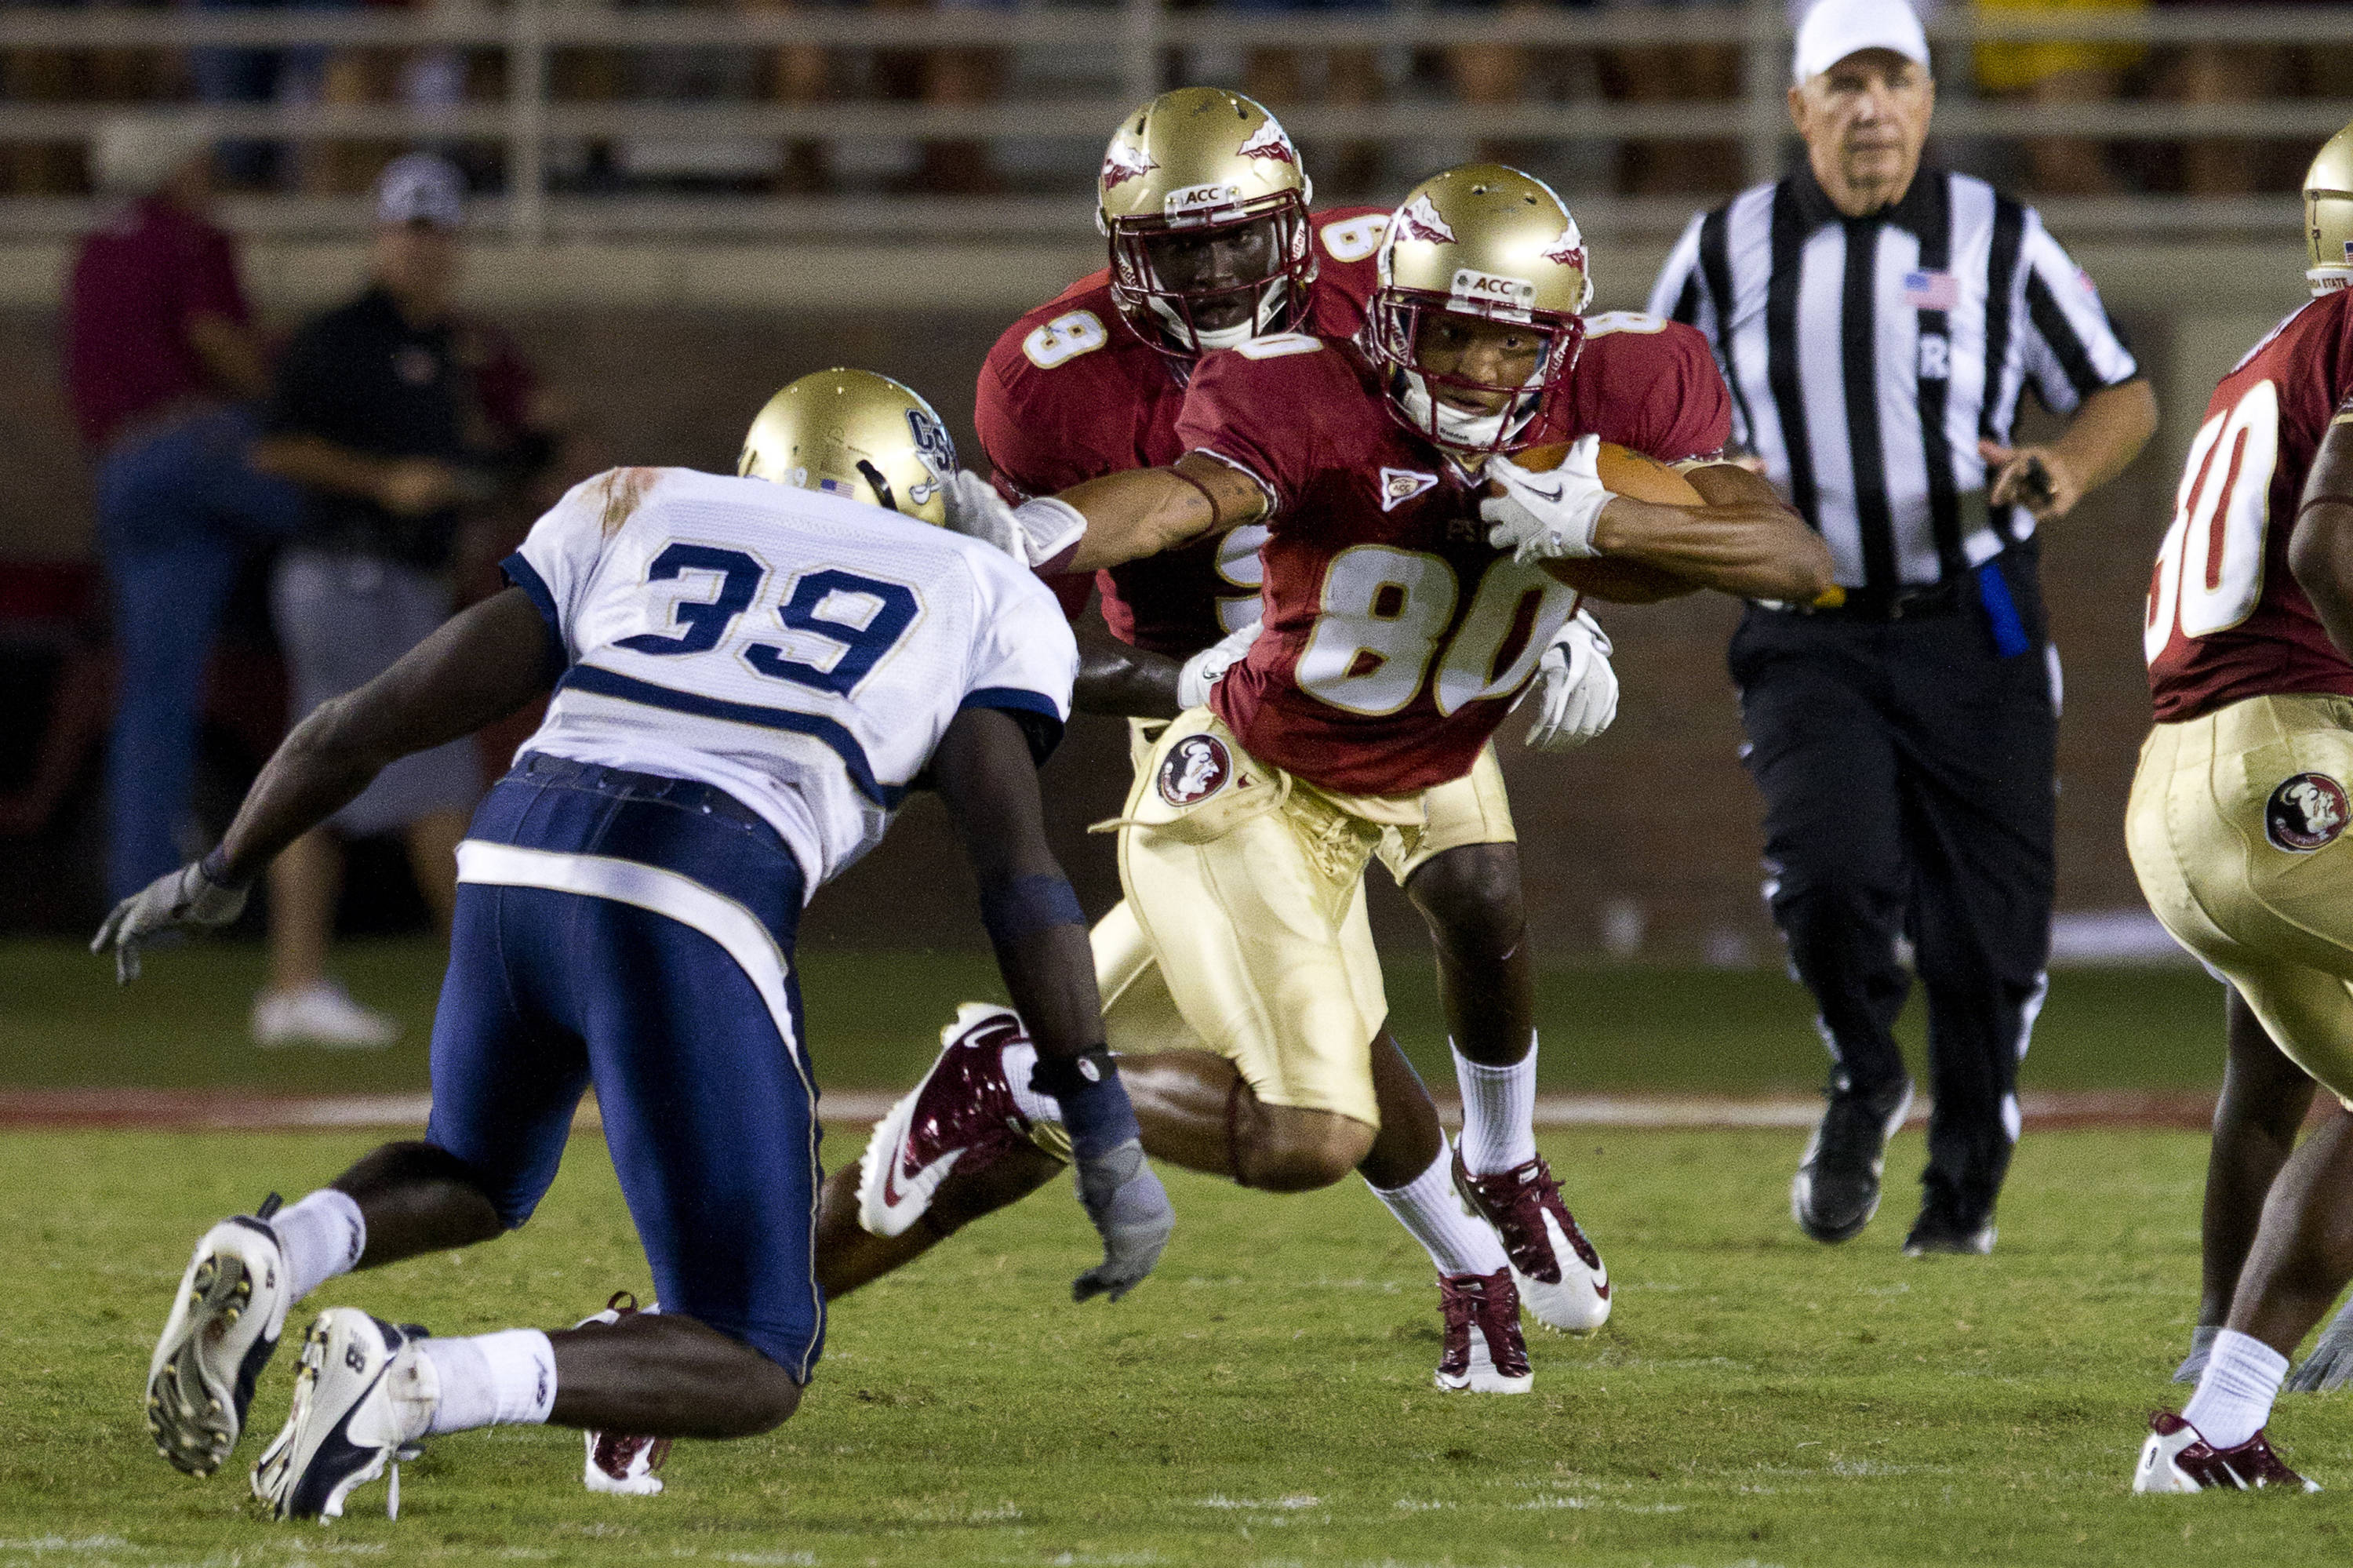 Rashad Greene (80) stiff arms a defender during the game against CSU on September 10, 2011.